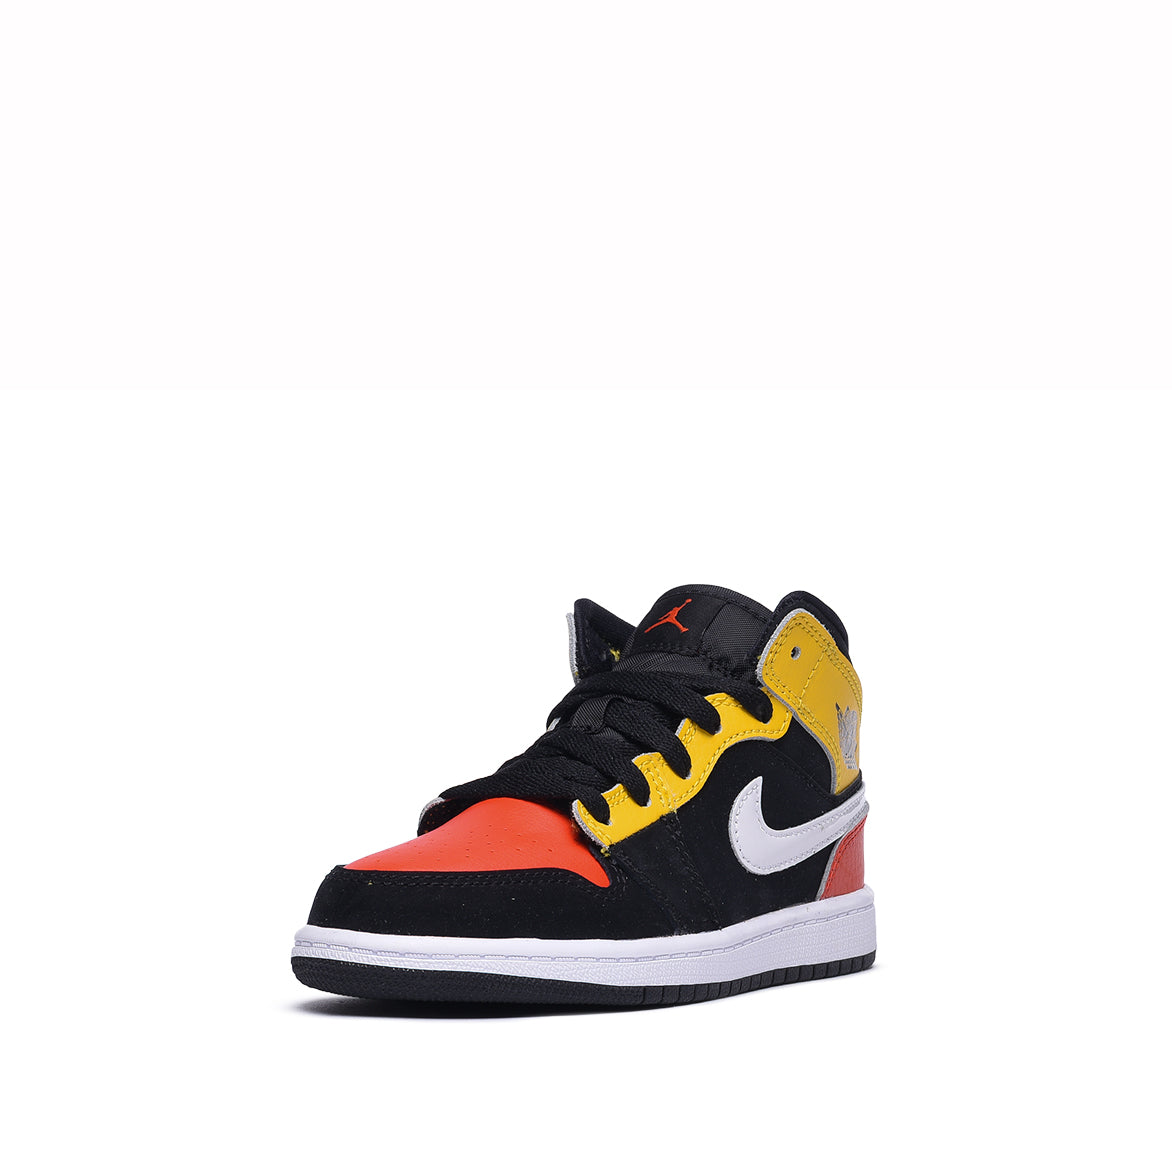 AIR JORDAN 1 MID SE (PS) - BLACK / TEAM ORANGE / AMARILLO